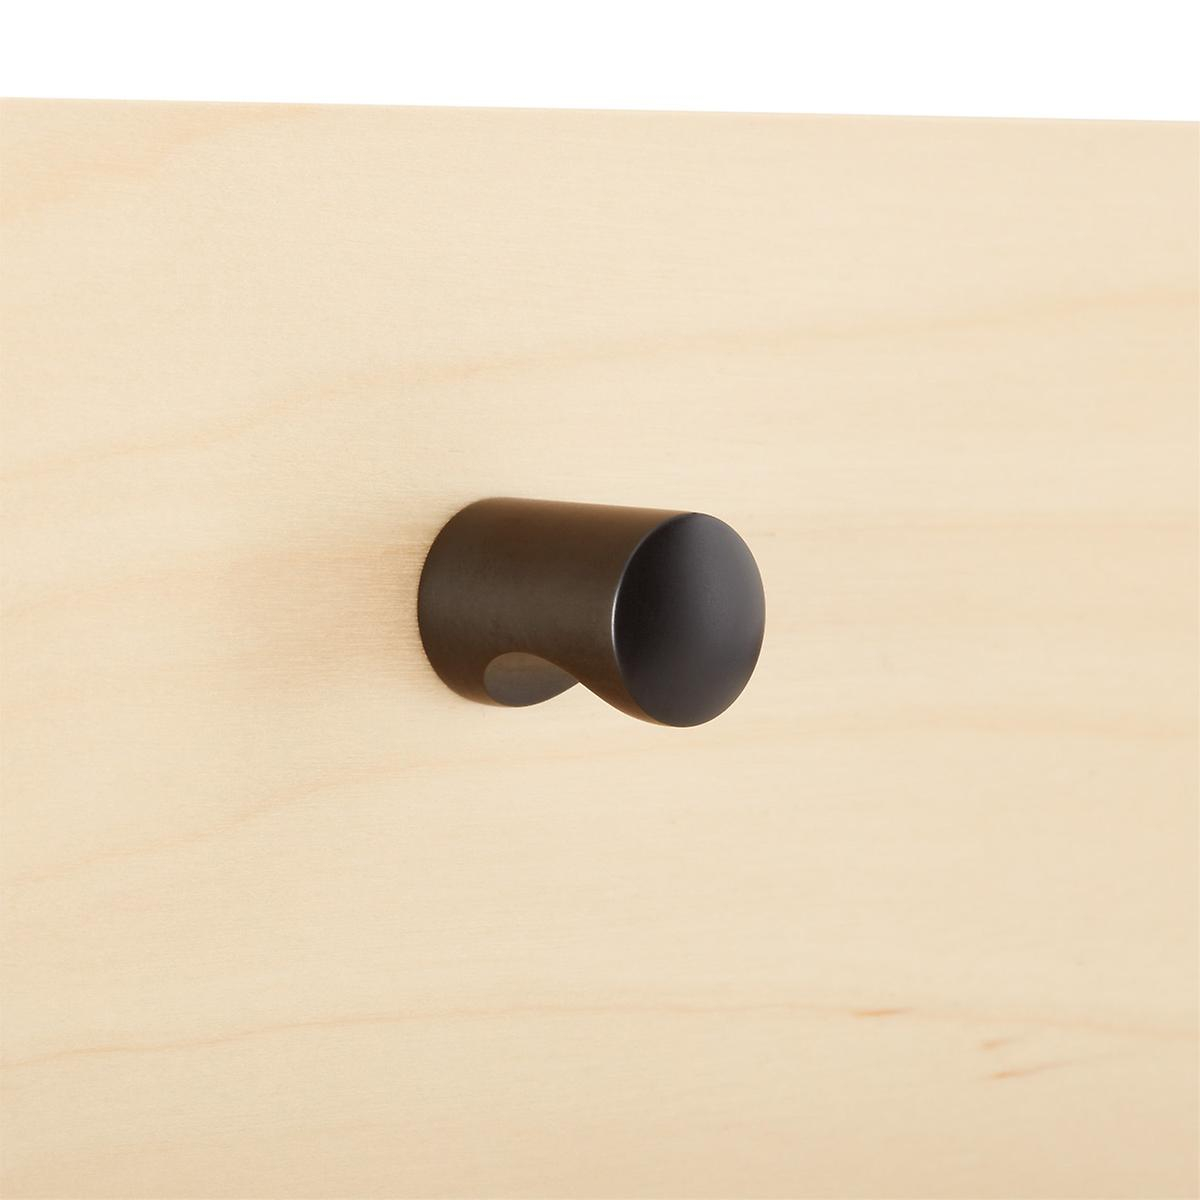 Elfa Decor Oil Rubbed Bronze Modern Knob